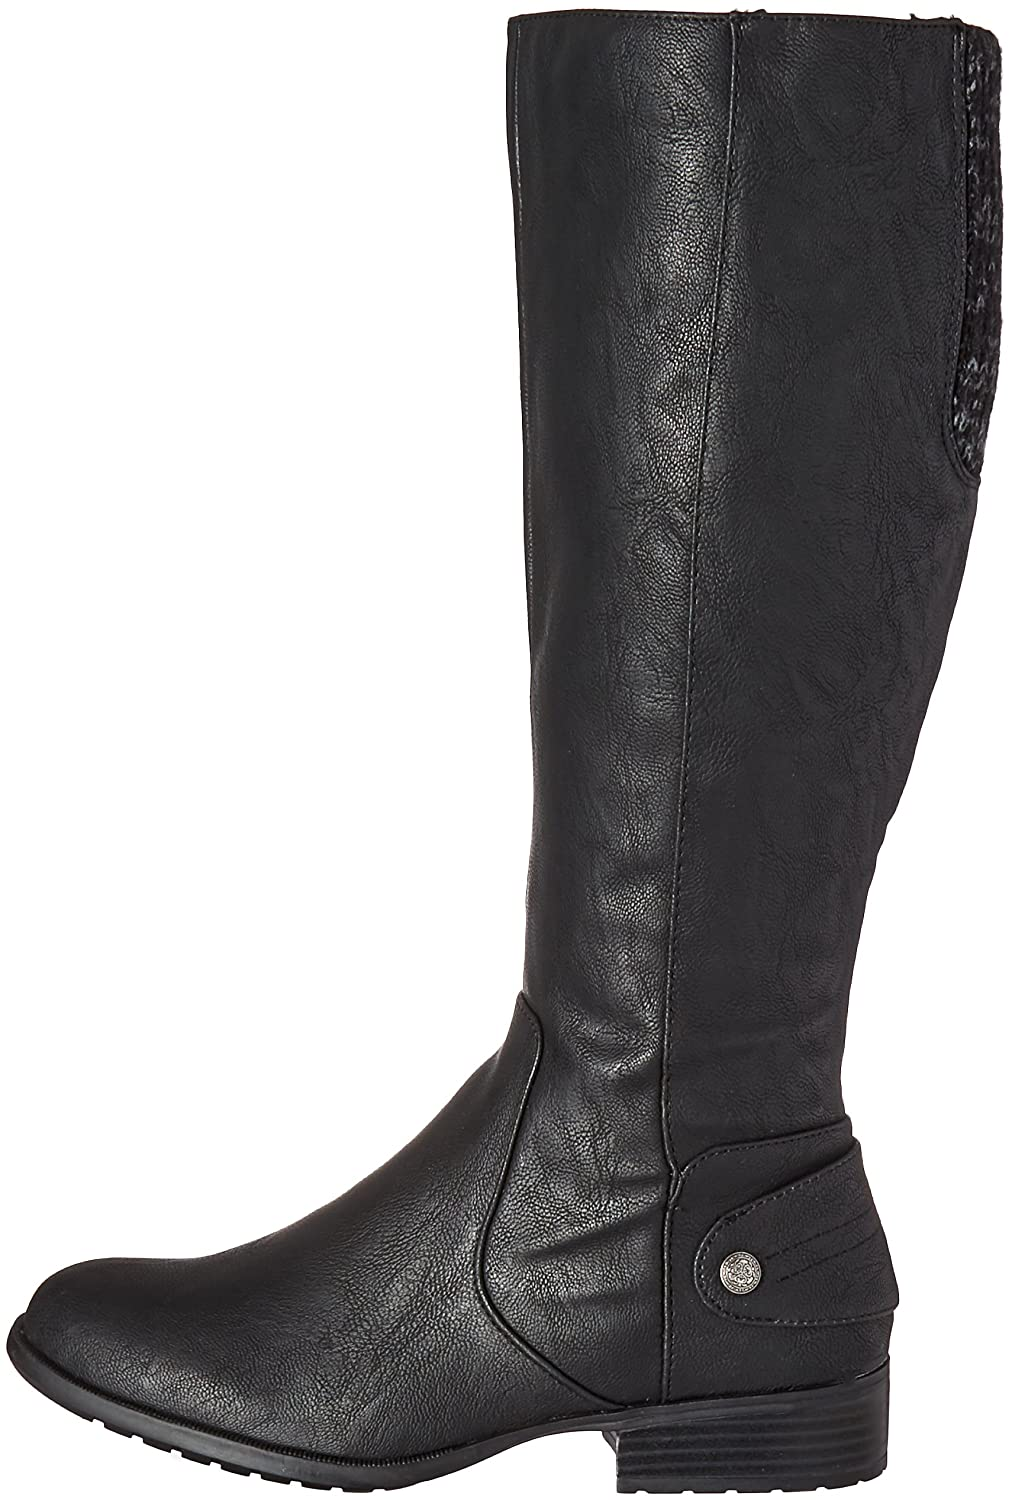 LifeStride Women's Xandy Riding B(M) Boot B01DV999NU 9 B(M) Riding US|Black 3a4228